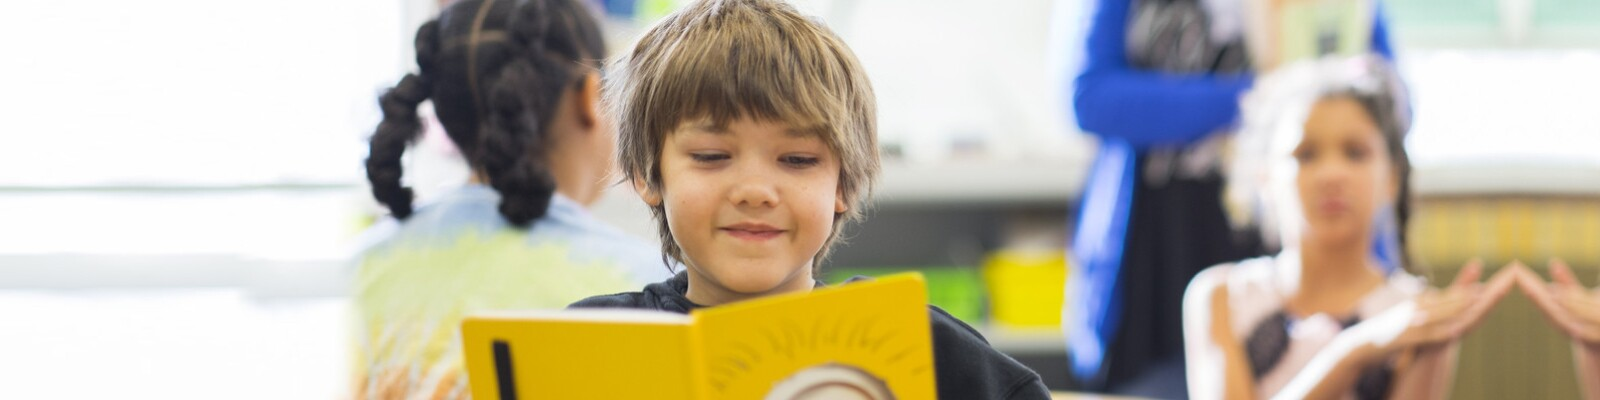 Boy reading a book and smiling